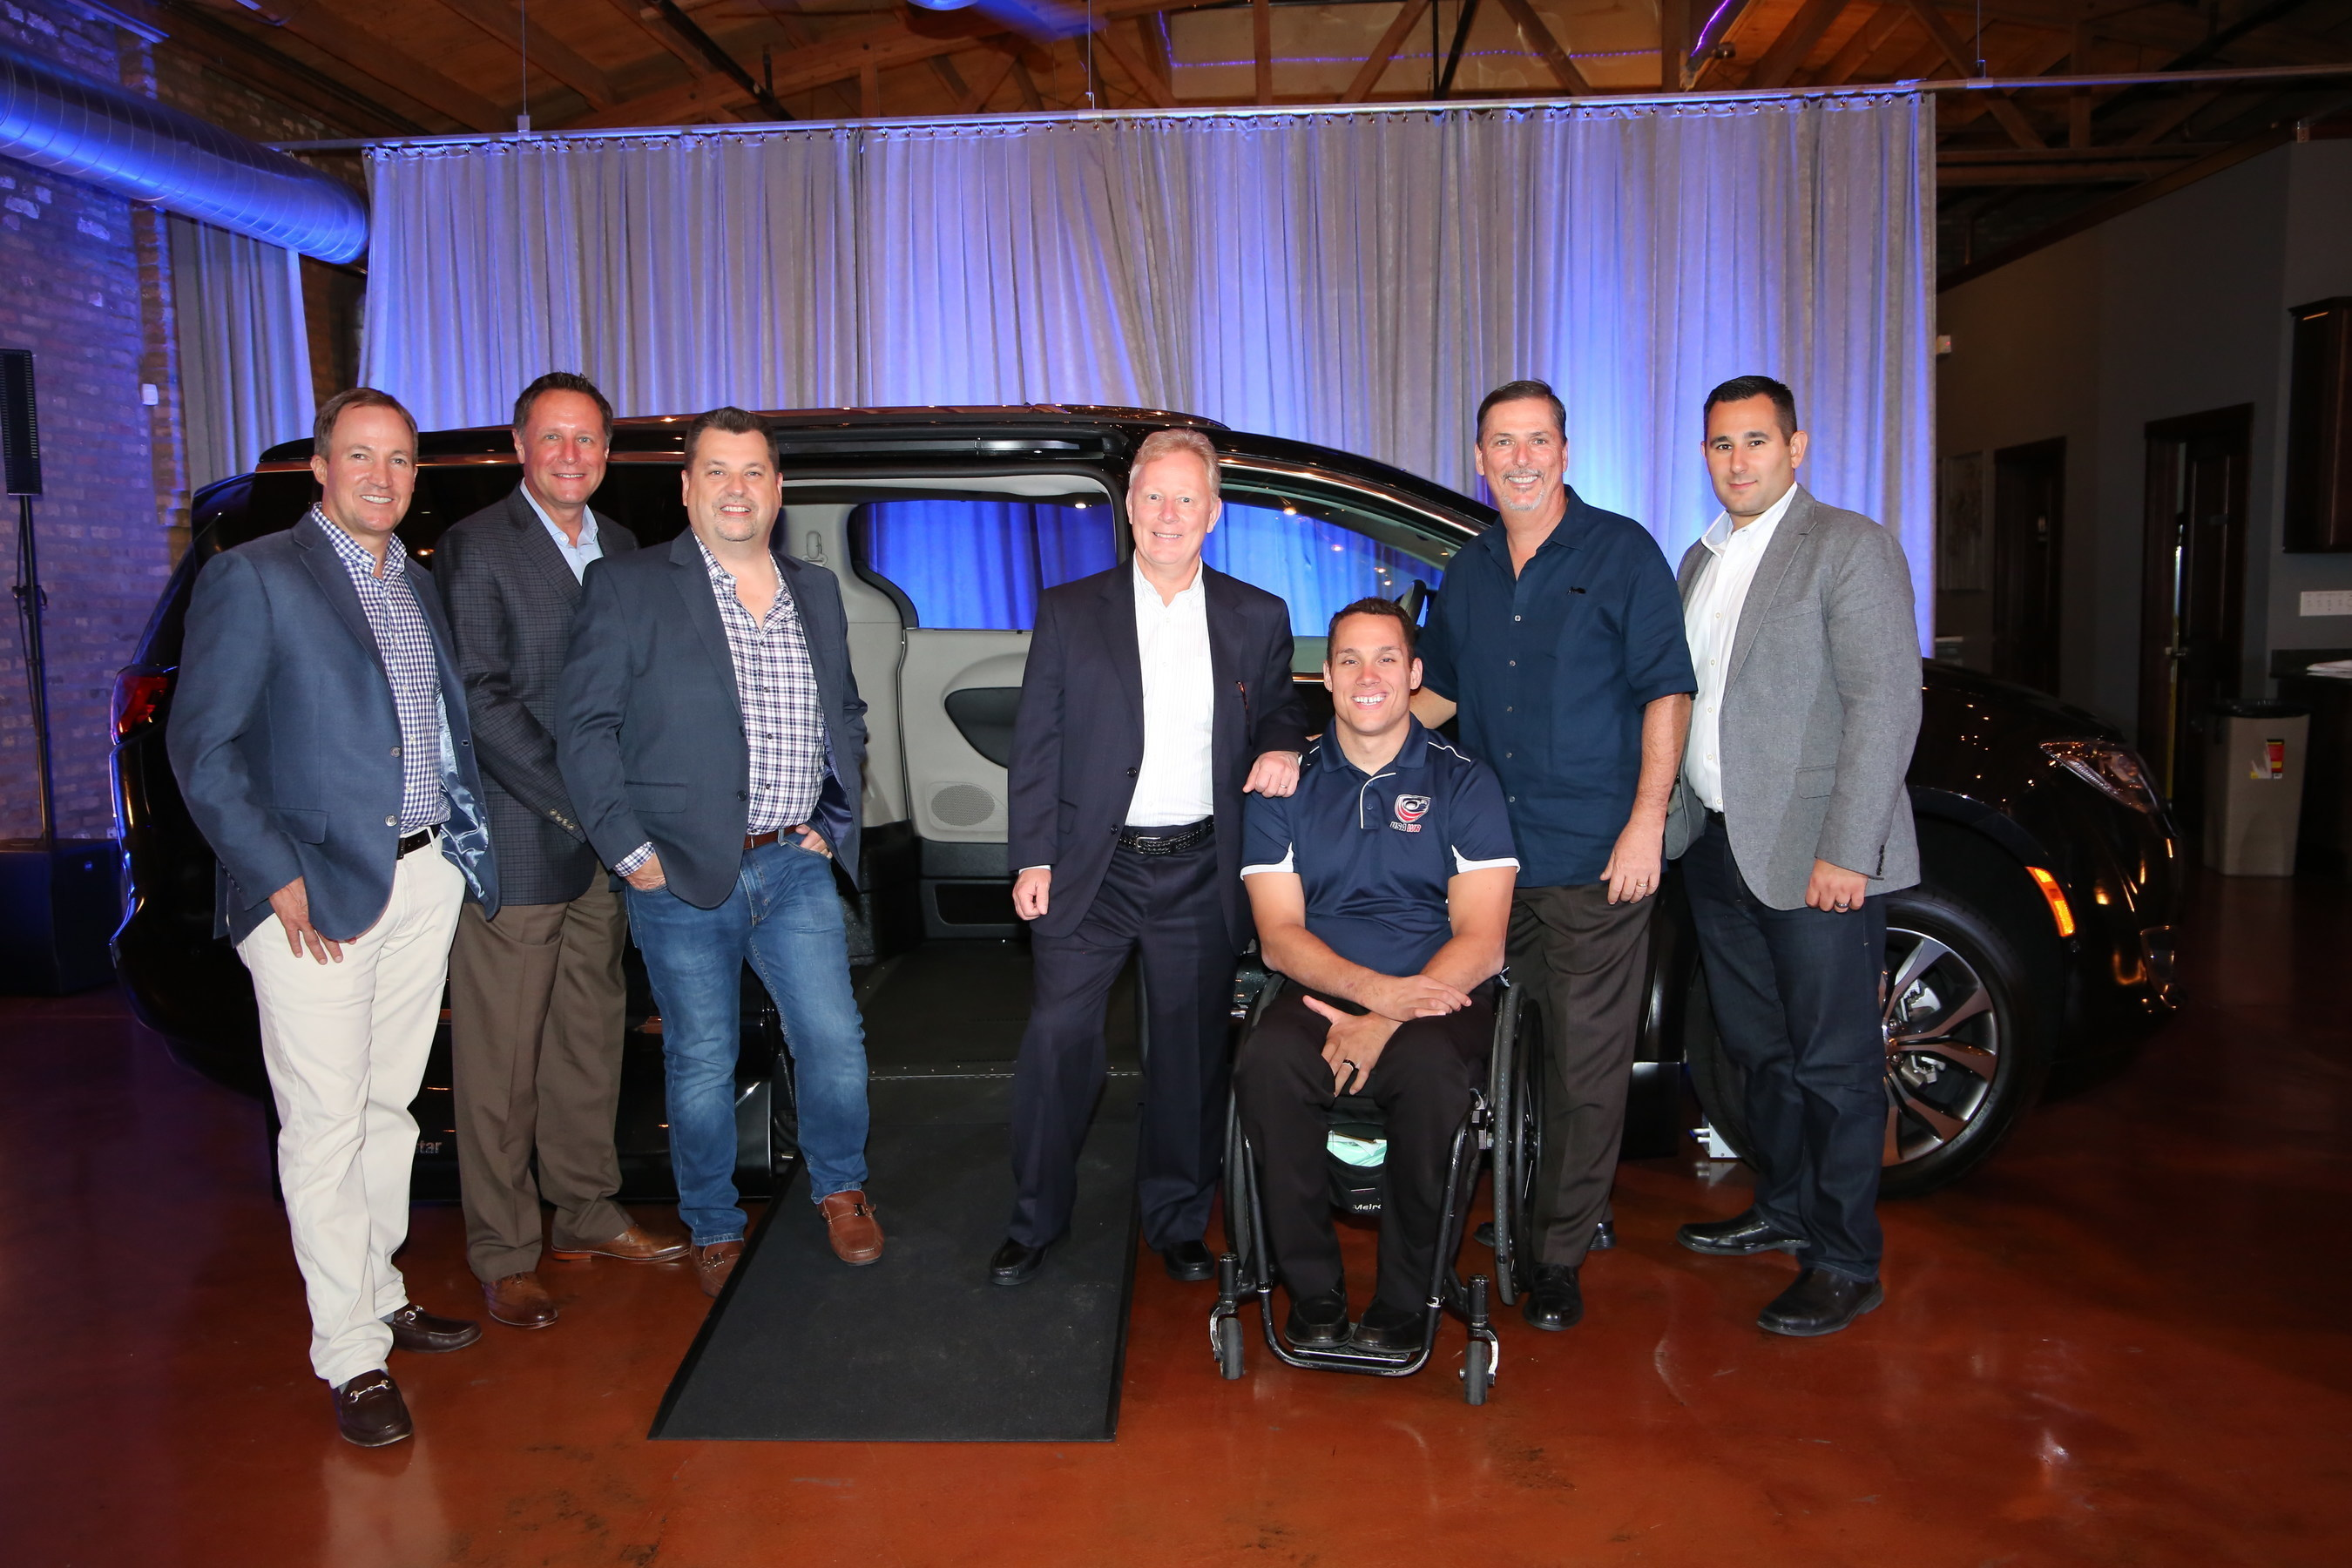 VMI introduces industry's first Chrysler Pacifica side-entry conversion to the Dealer Council Executive Committee in Chicago, Il.  Shown here at the event are from left, Doug Eaton, VMI CEO, Michael Ring, FCA, Steve Crandell, VMI COO, Len Norton, Chairman of VMI Dealer Council, Joe Delgrave, Team USA, Paralympian and new VMI spokesperson, Tim Barone, VMI CFO, and Matt Huber, FCA.